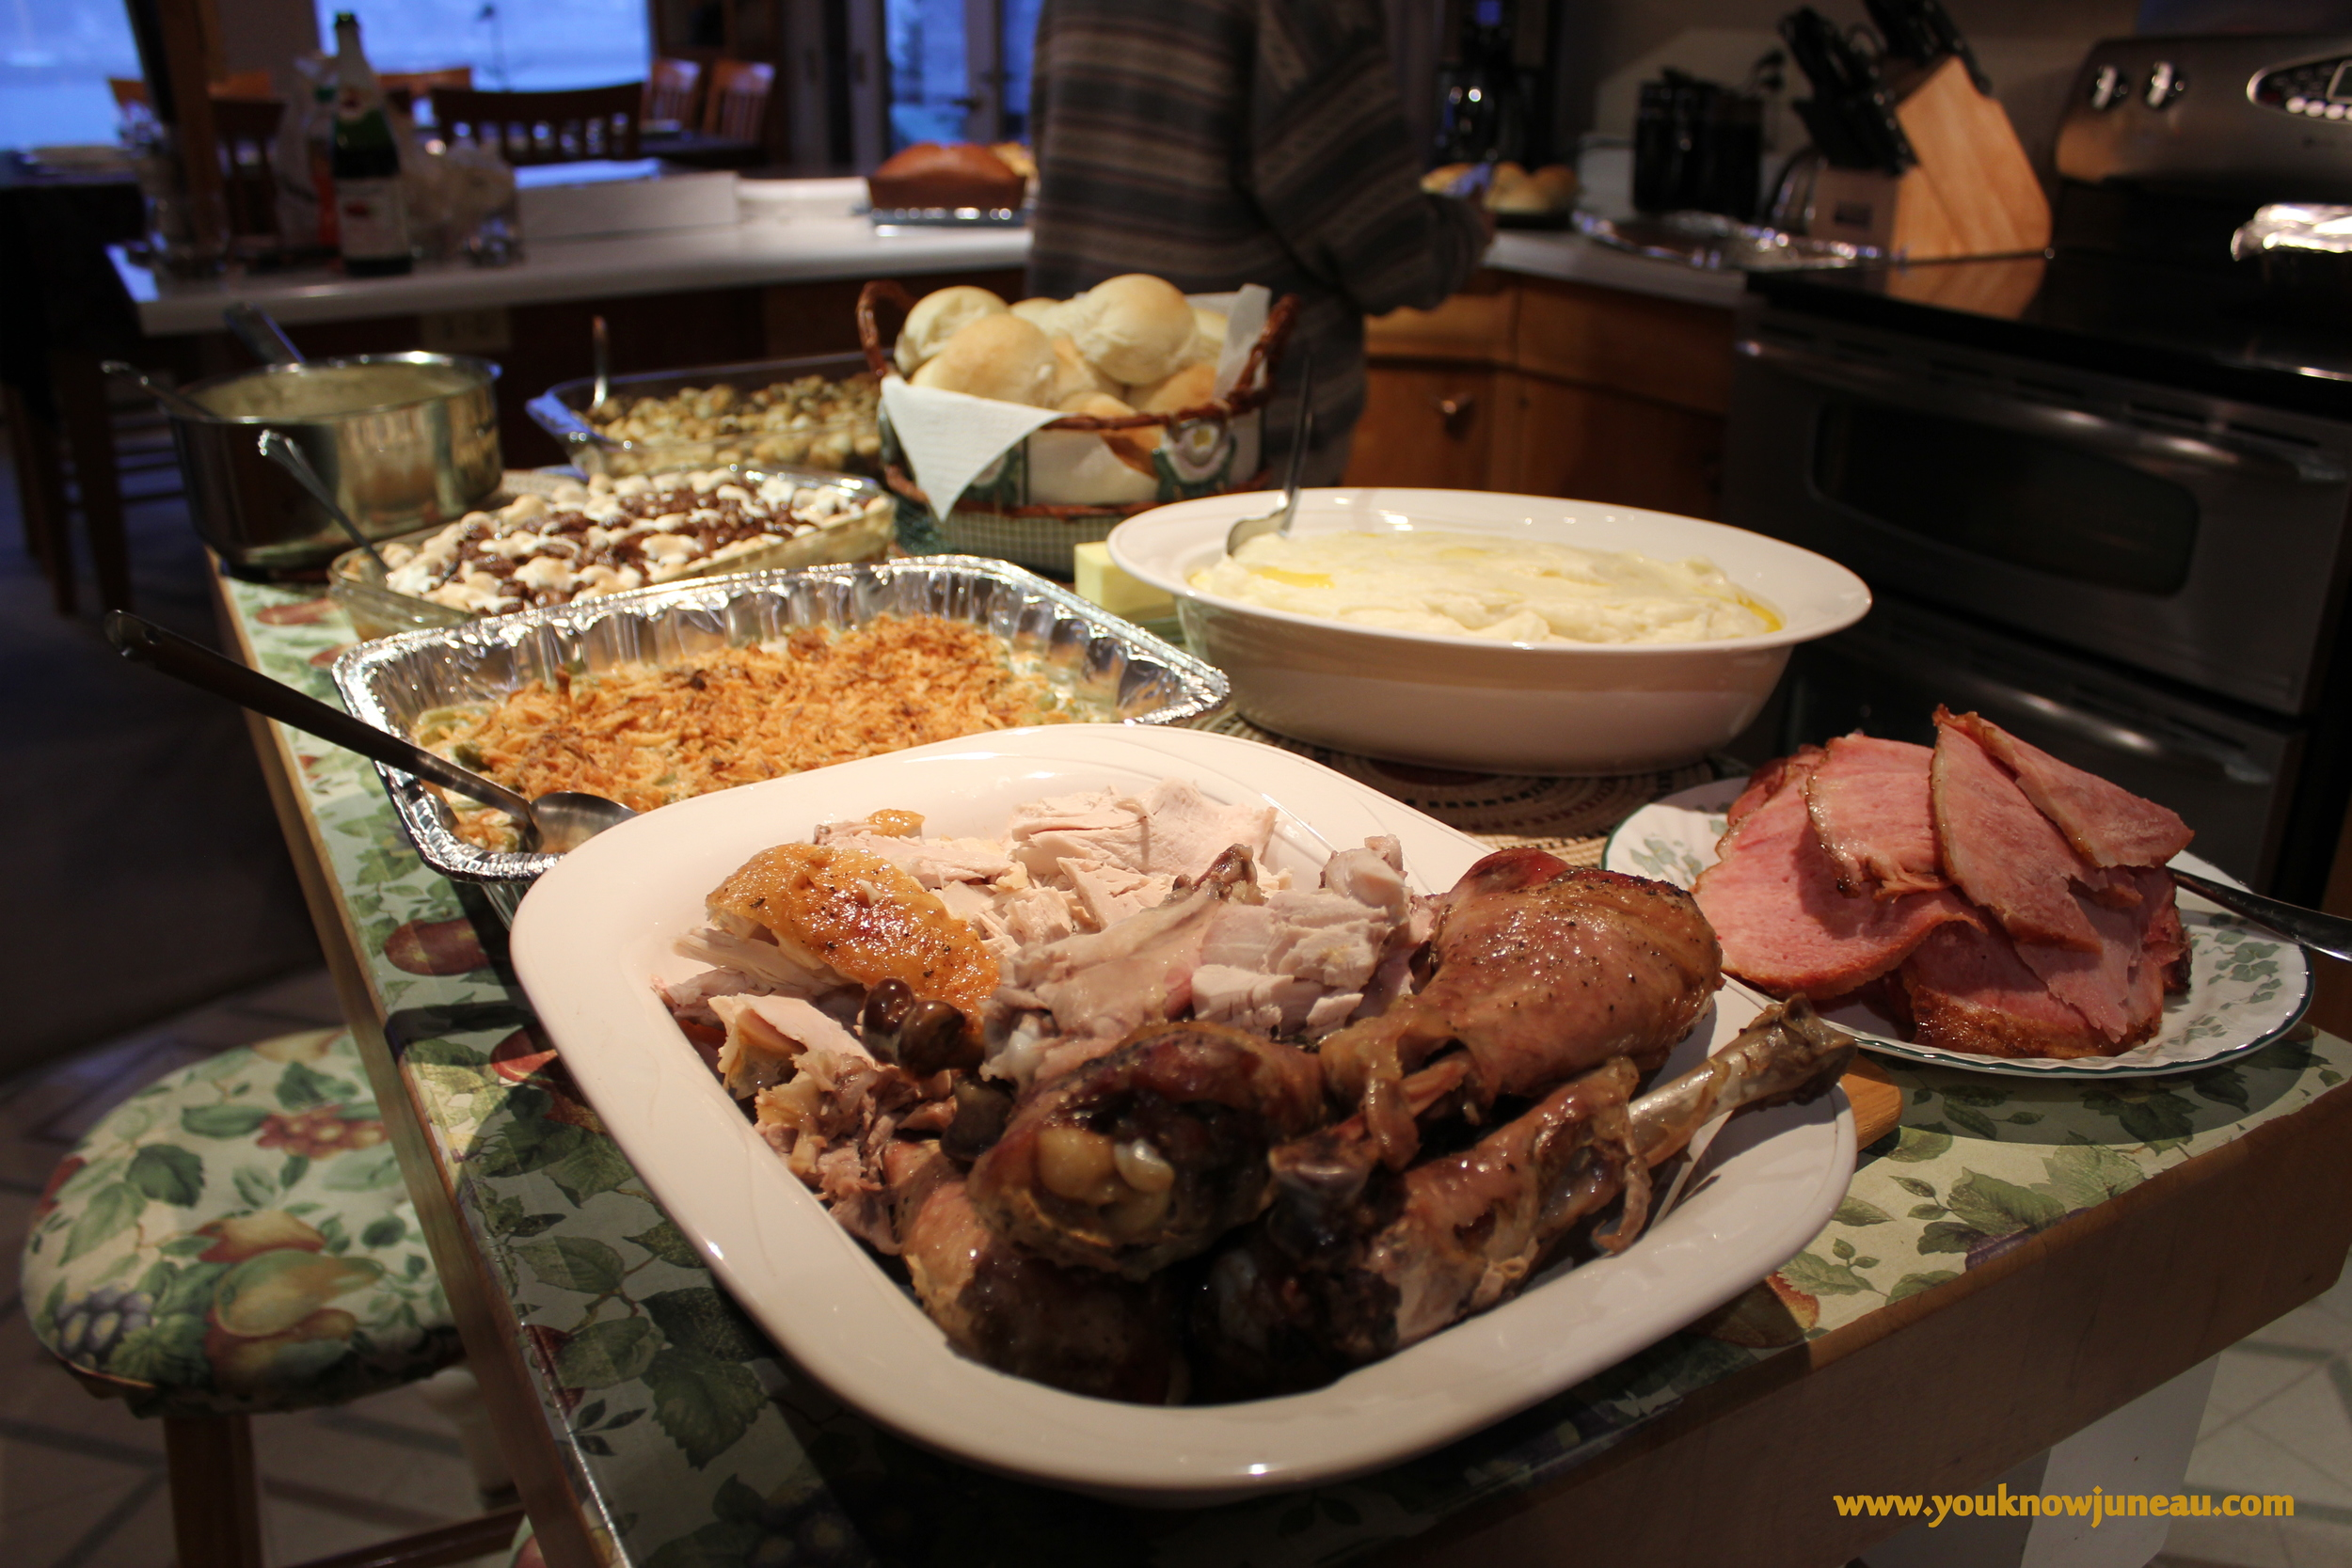 Turkey and ham and all the fixins'. I'm fixin' to get me a plate!